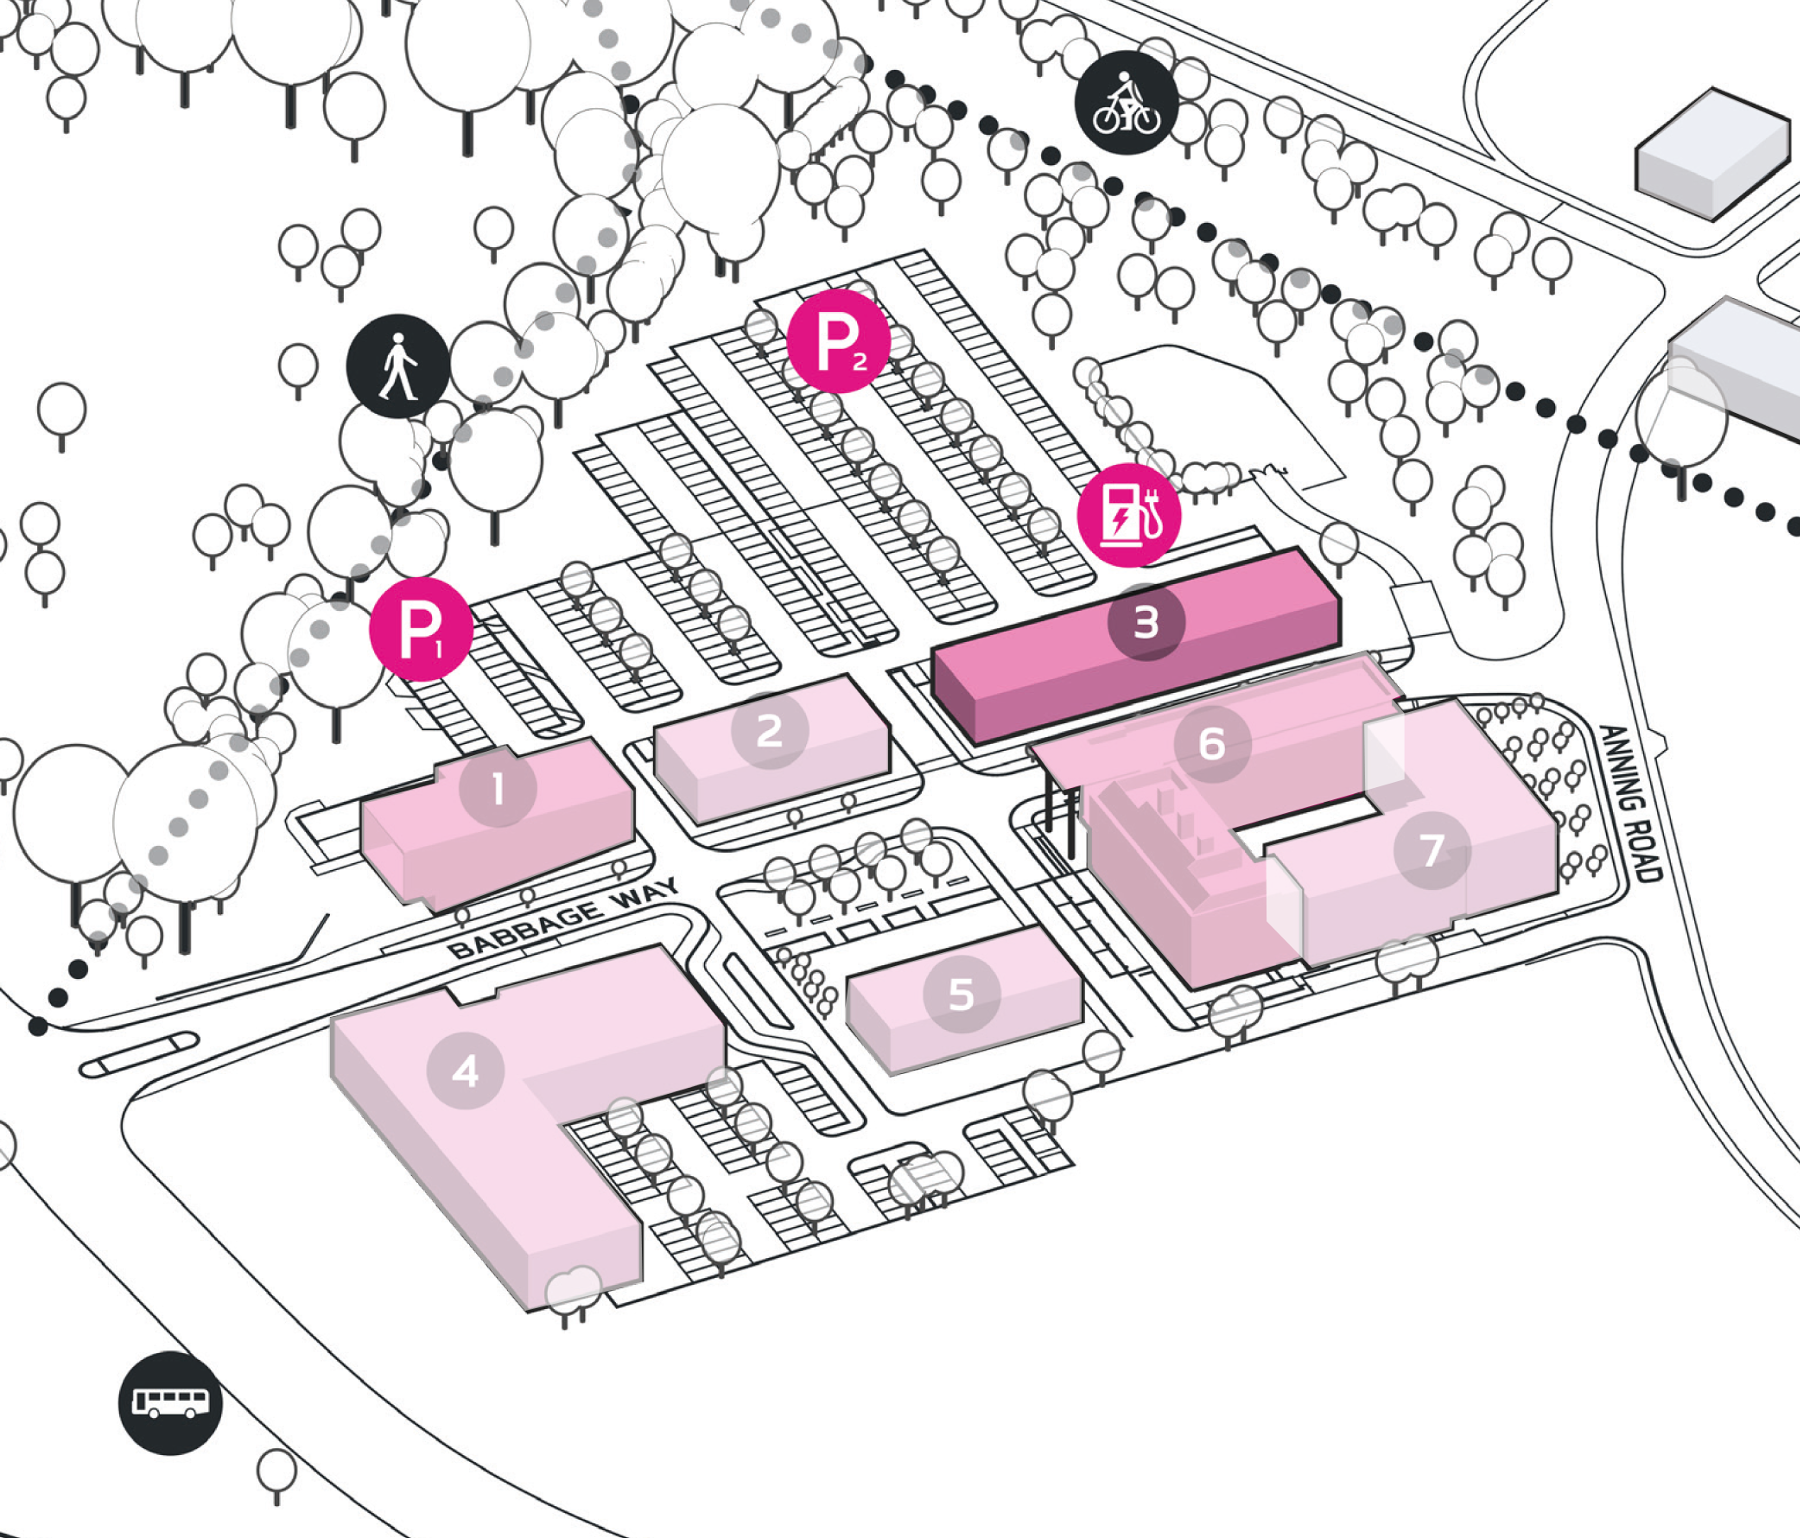 Park Plan highlighting cluster A Building 3